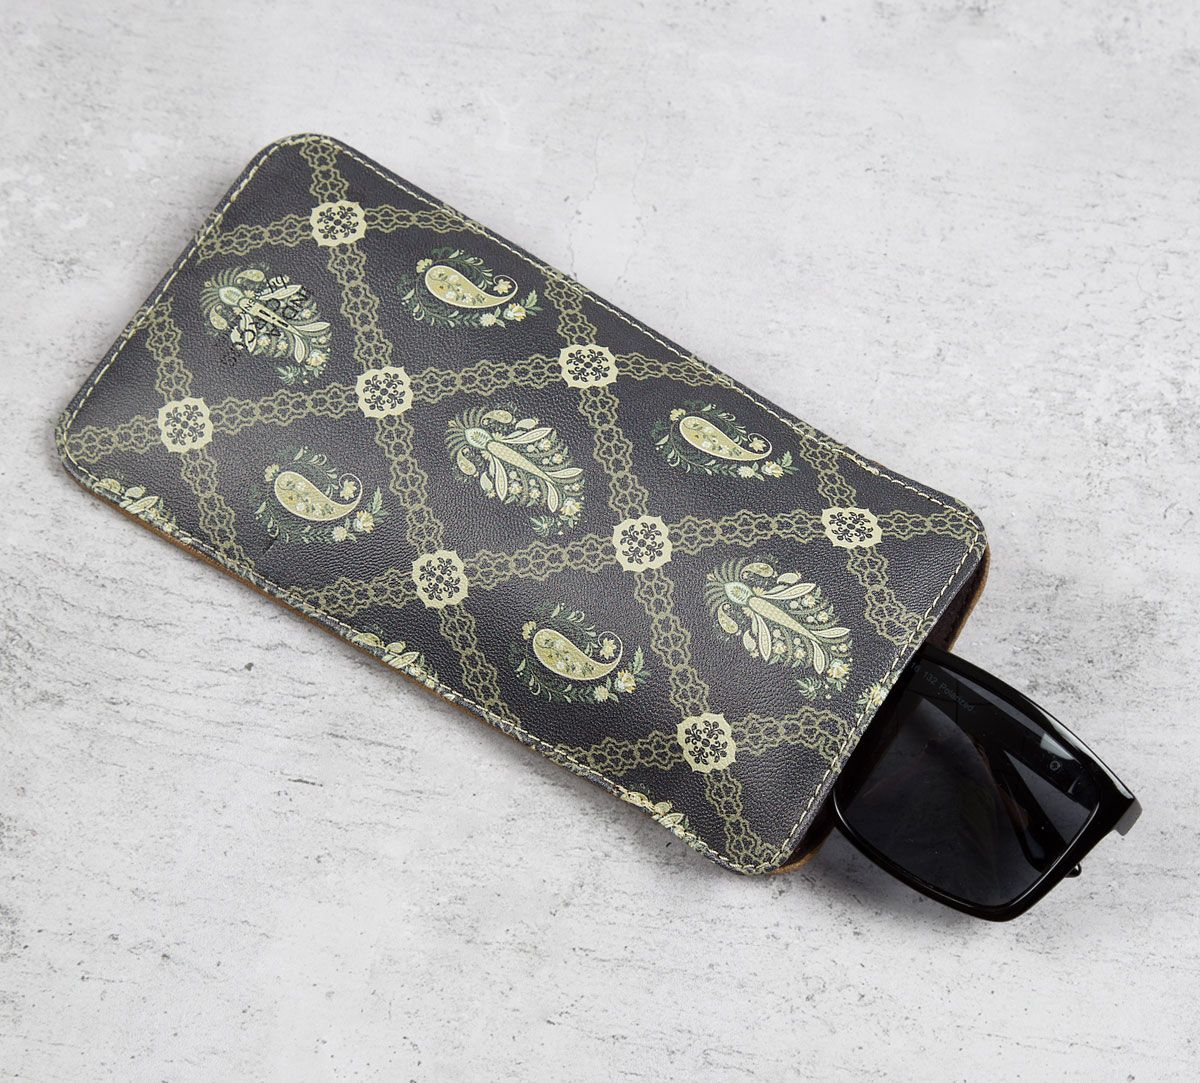 Feathers of Twilight Spectacle Case